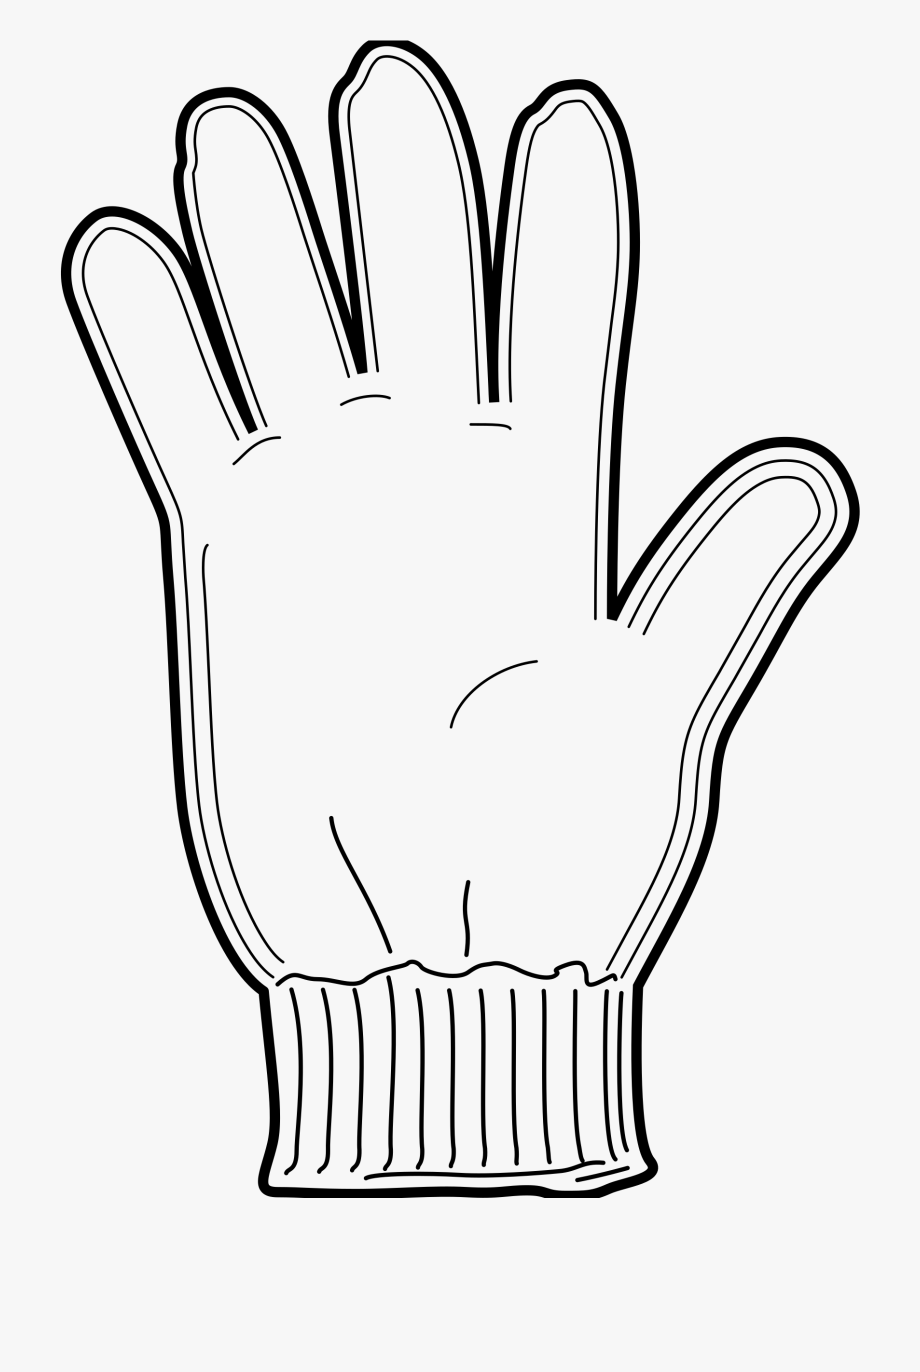 Winter clothes gloves cartoon. Glove clipart black and white